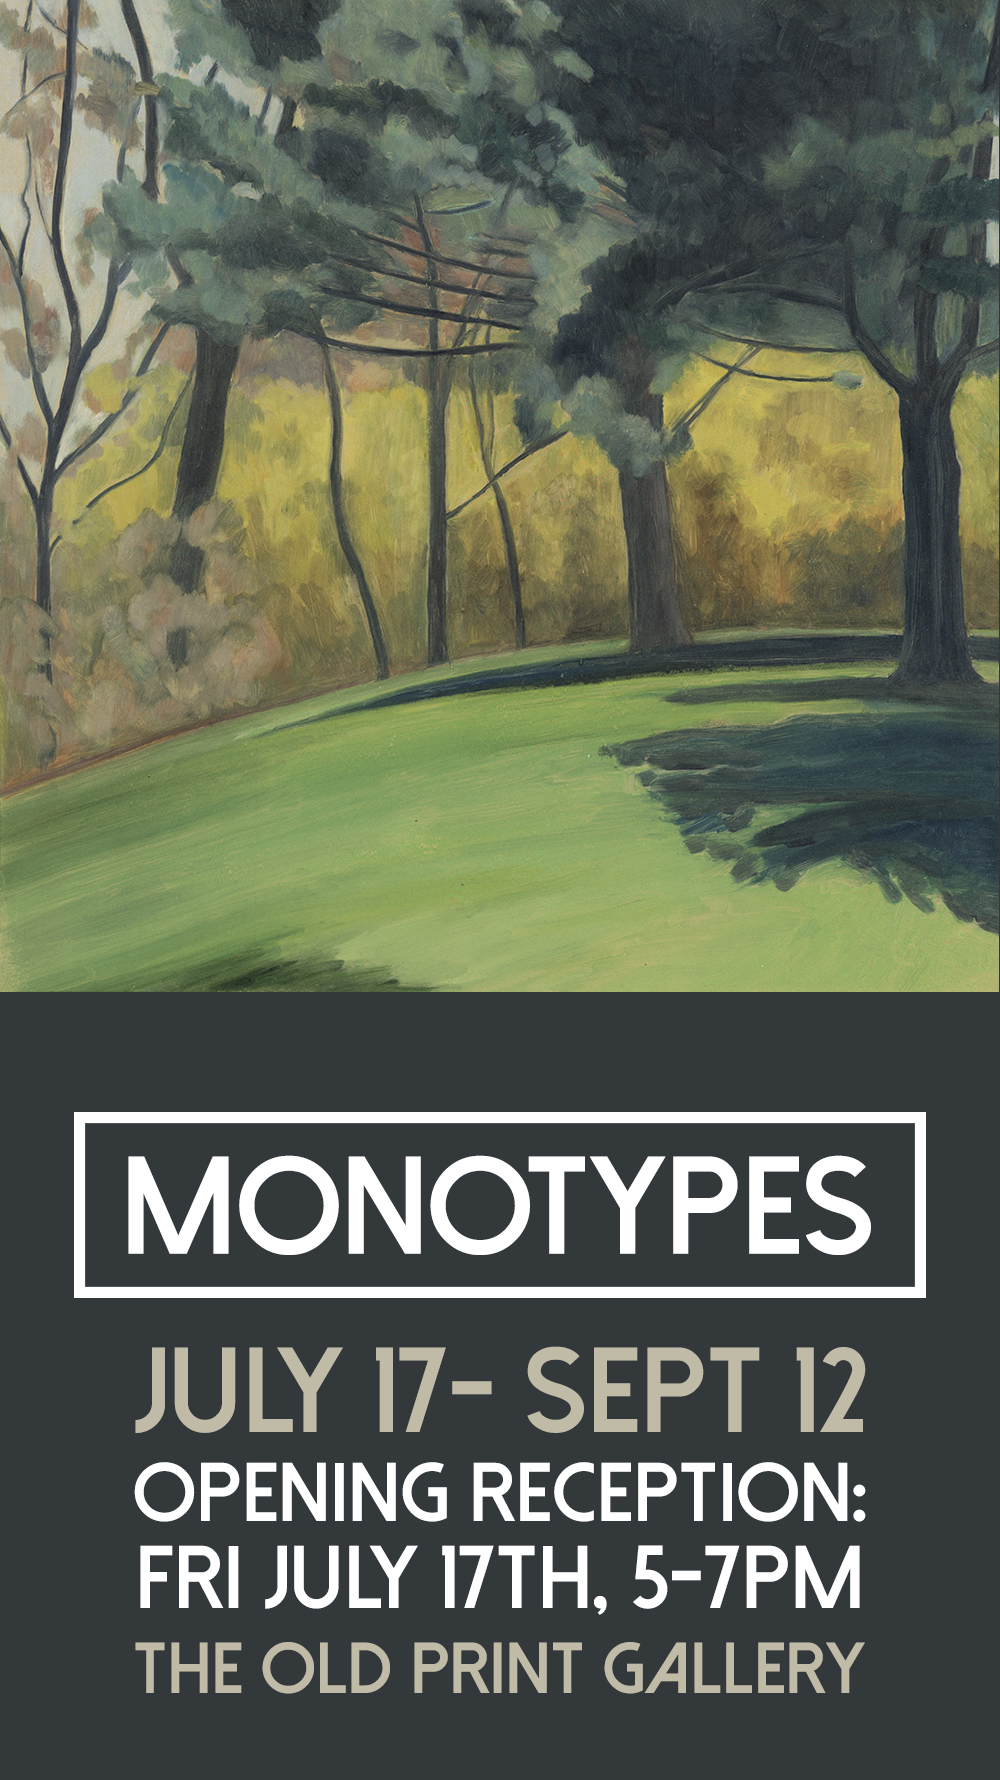 Monotypes Old Print Gallery Invite